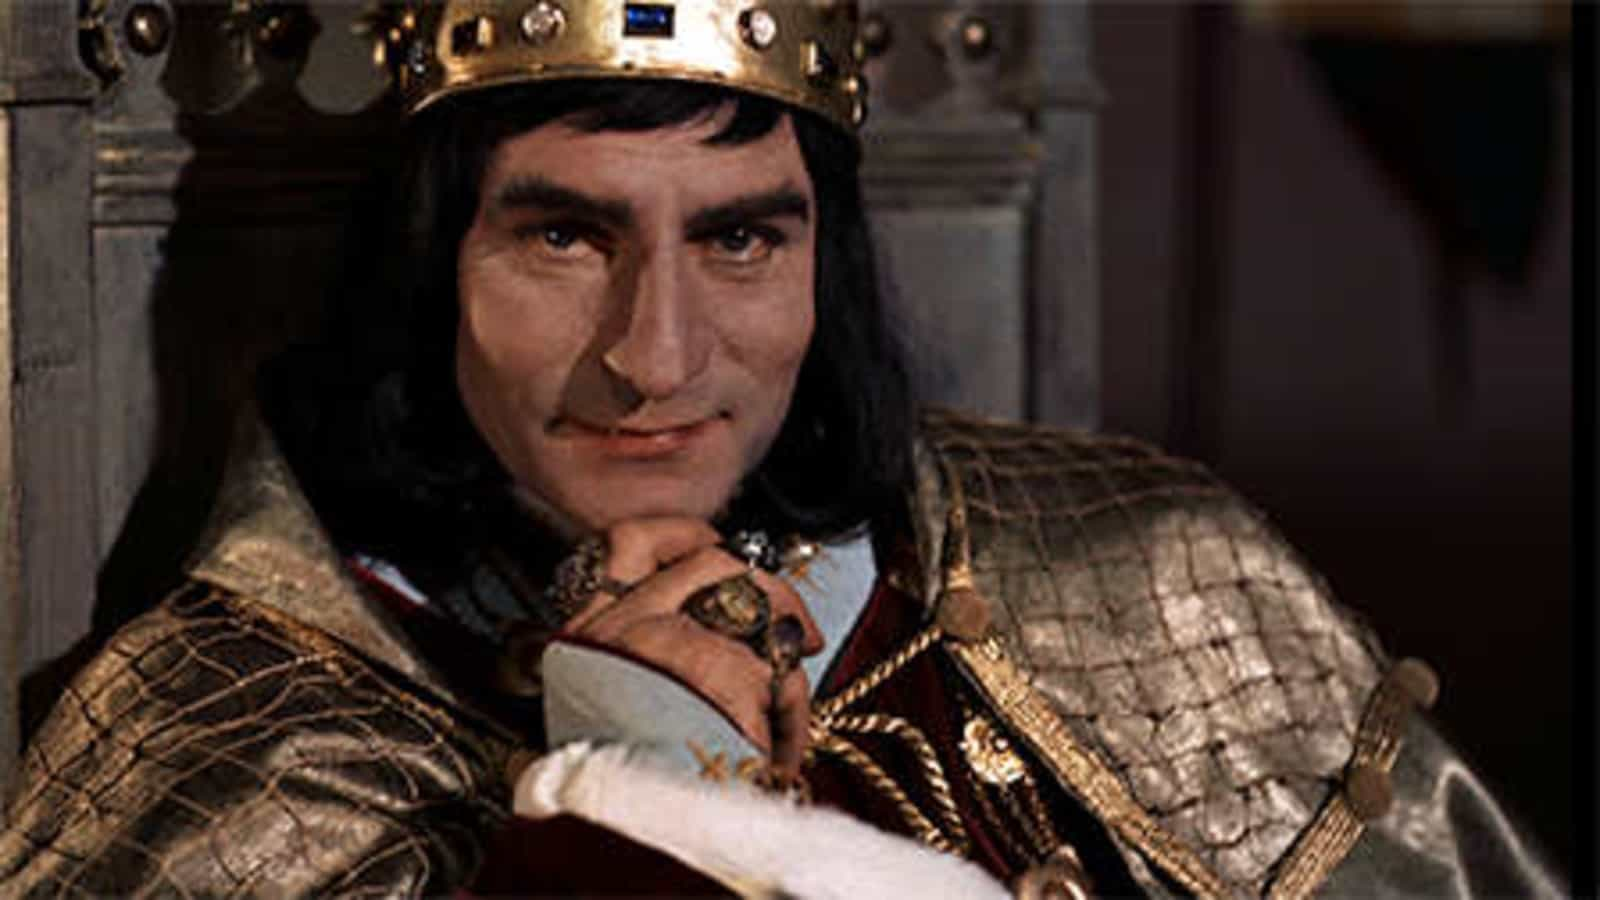 Richard III : the ambiguity of Richard's evil photo